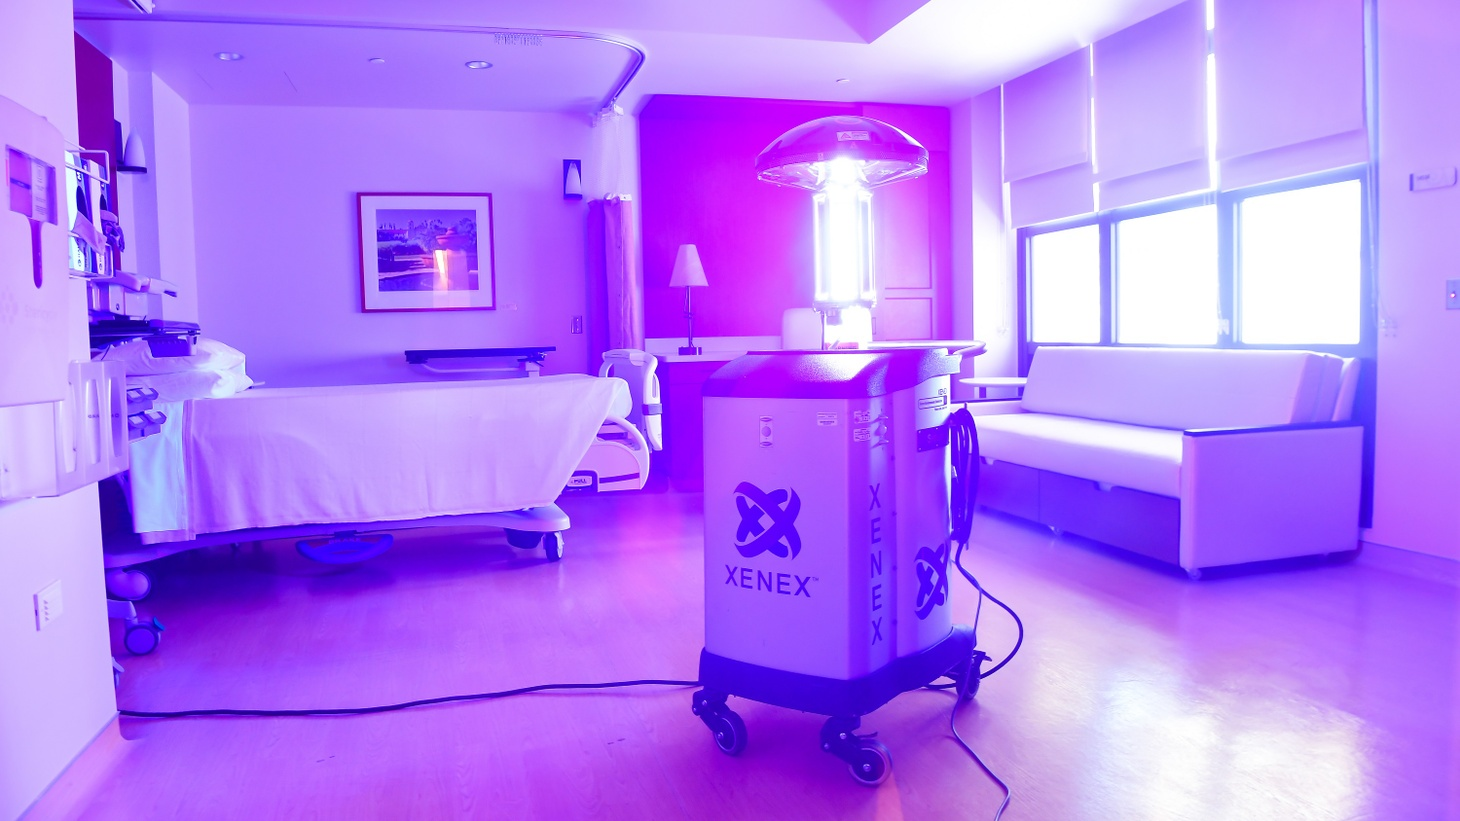 A Xenex robot uses high-intensity UV light to kill germs at Cottage Hospital.